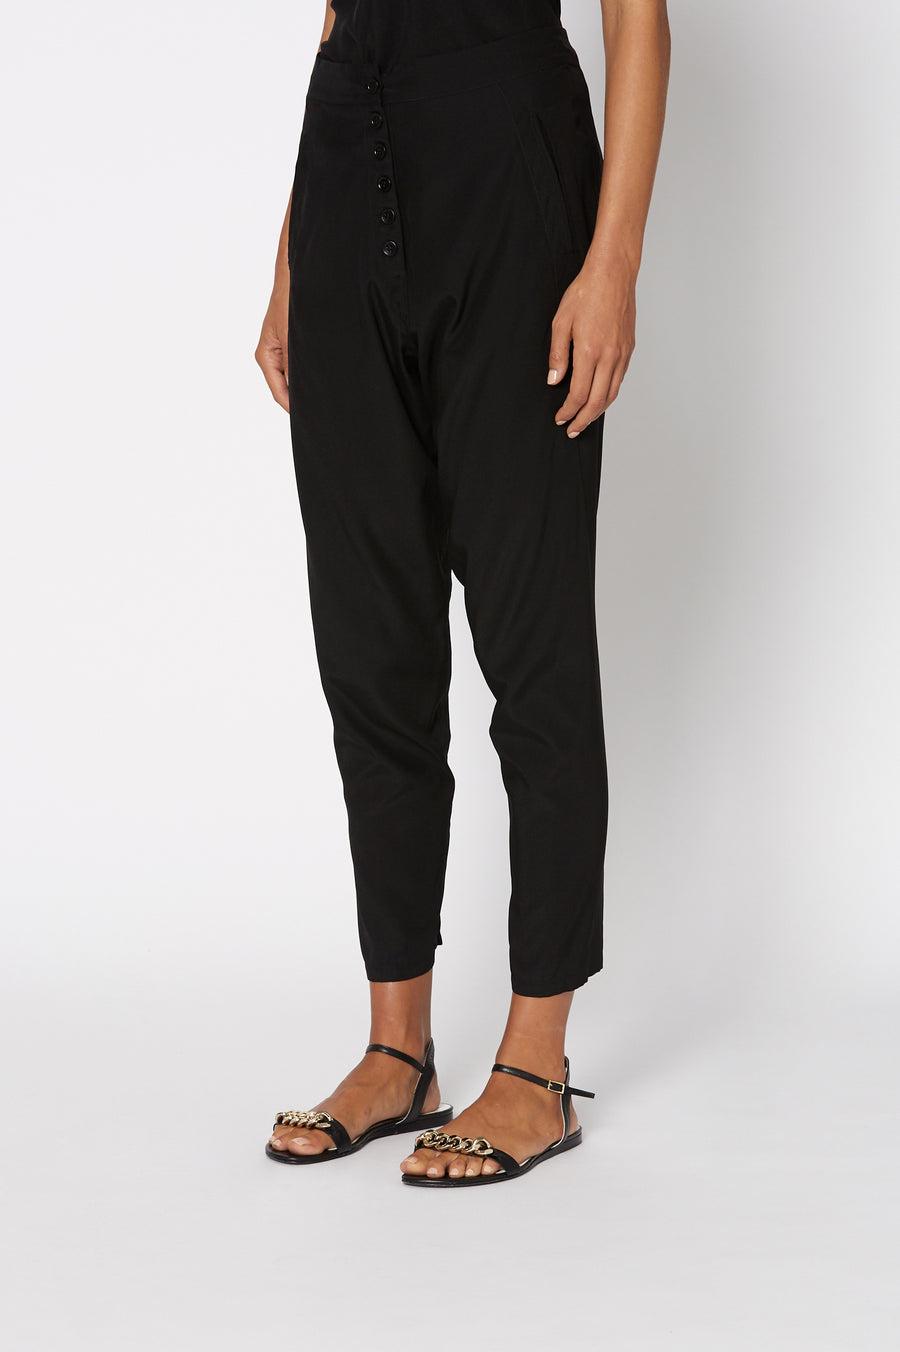 SILK LOW RISE BUTTON PANT BLACK